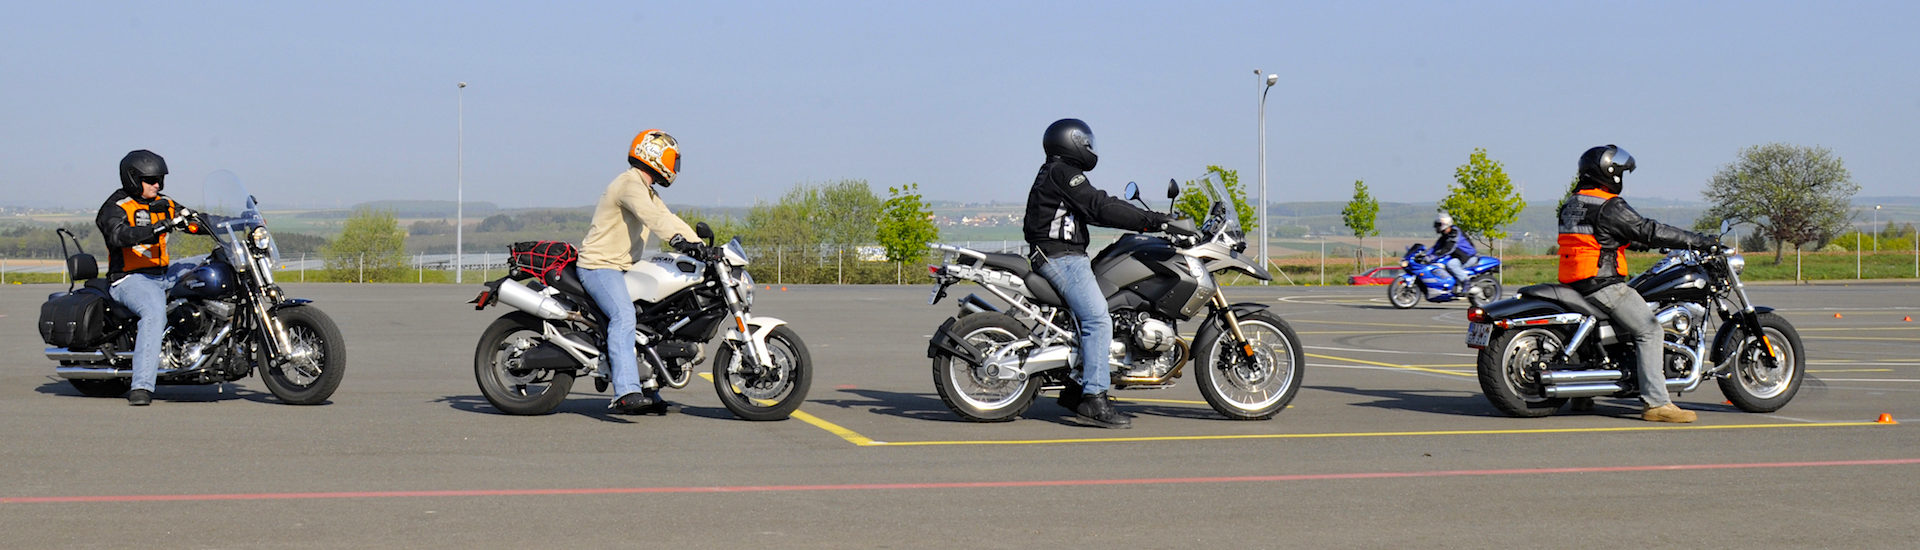 How to get a motorcycle driving licence in Germany - All